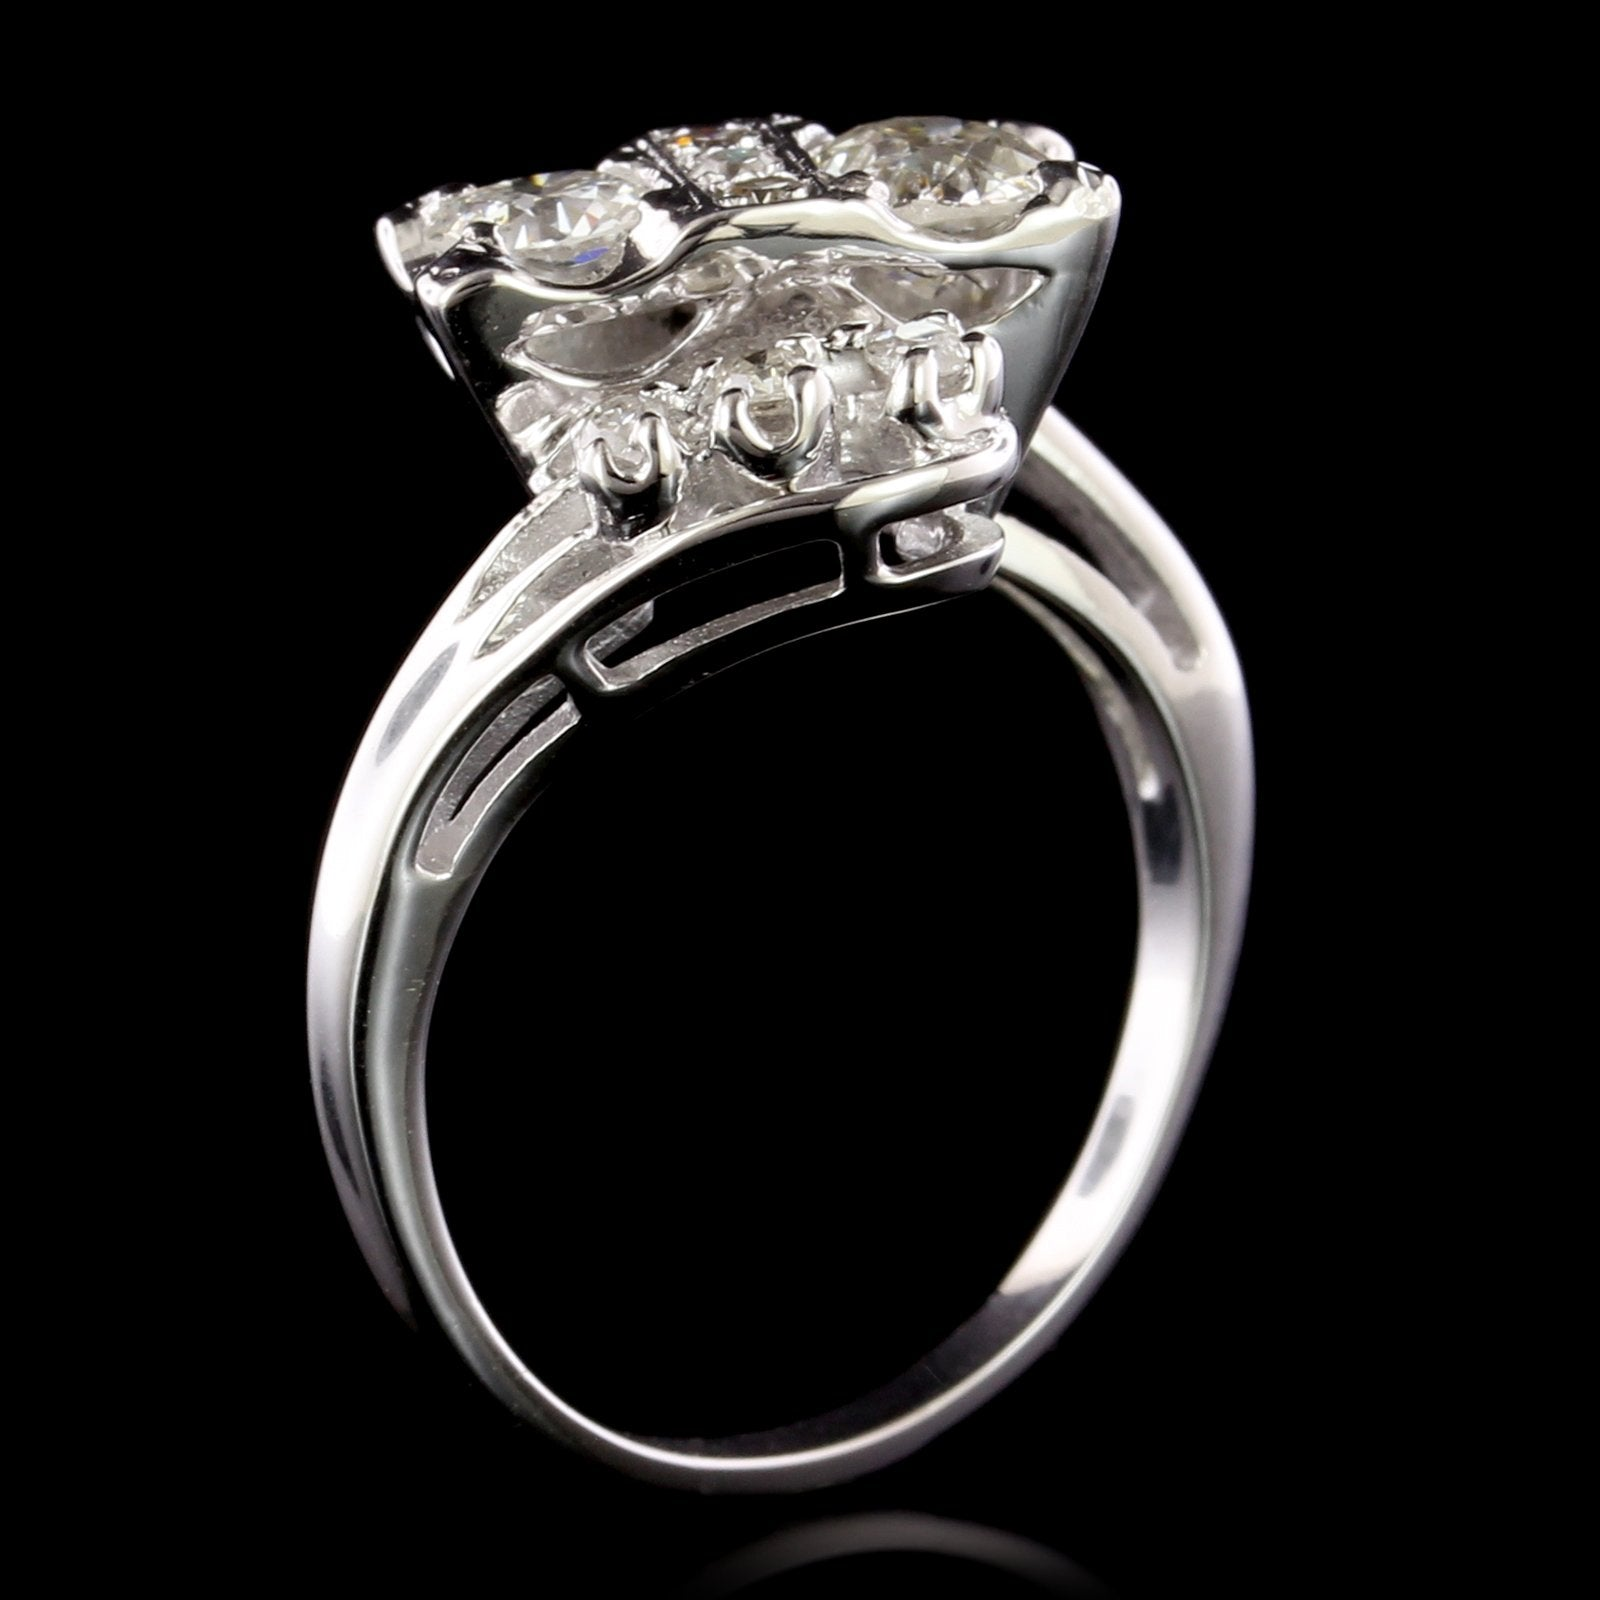 14K White Gold Estate Diamond Bypass Ring